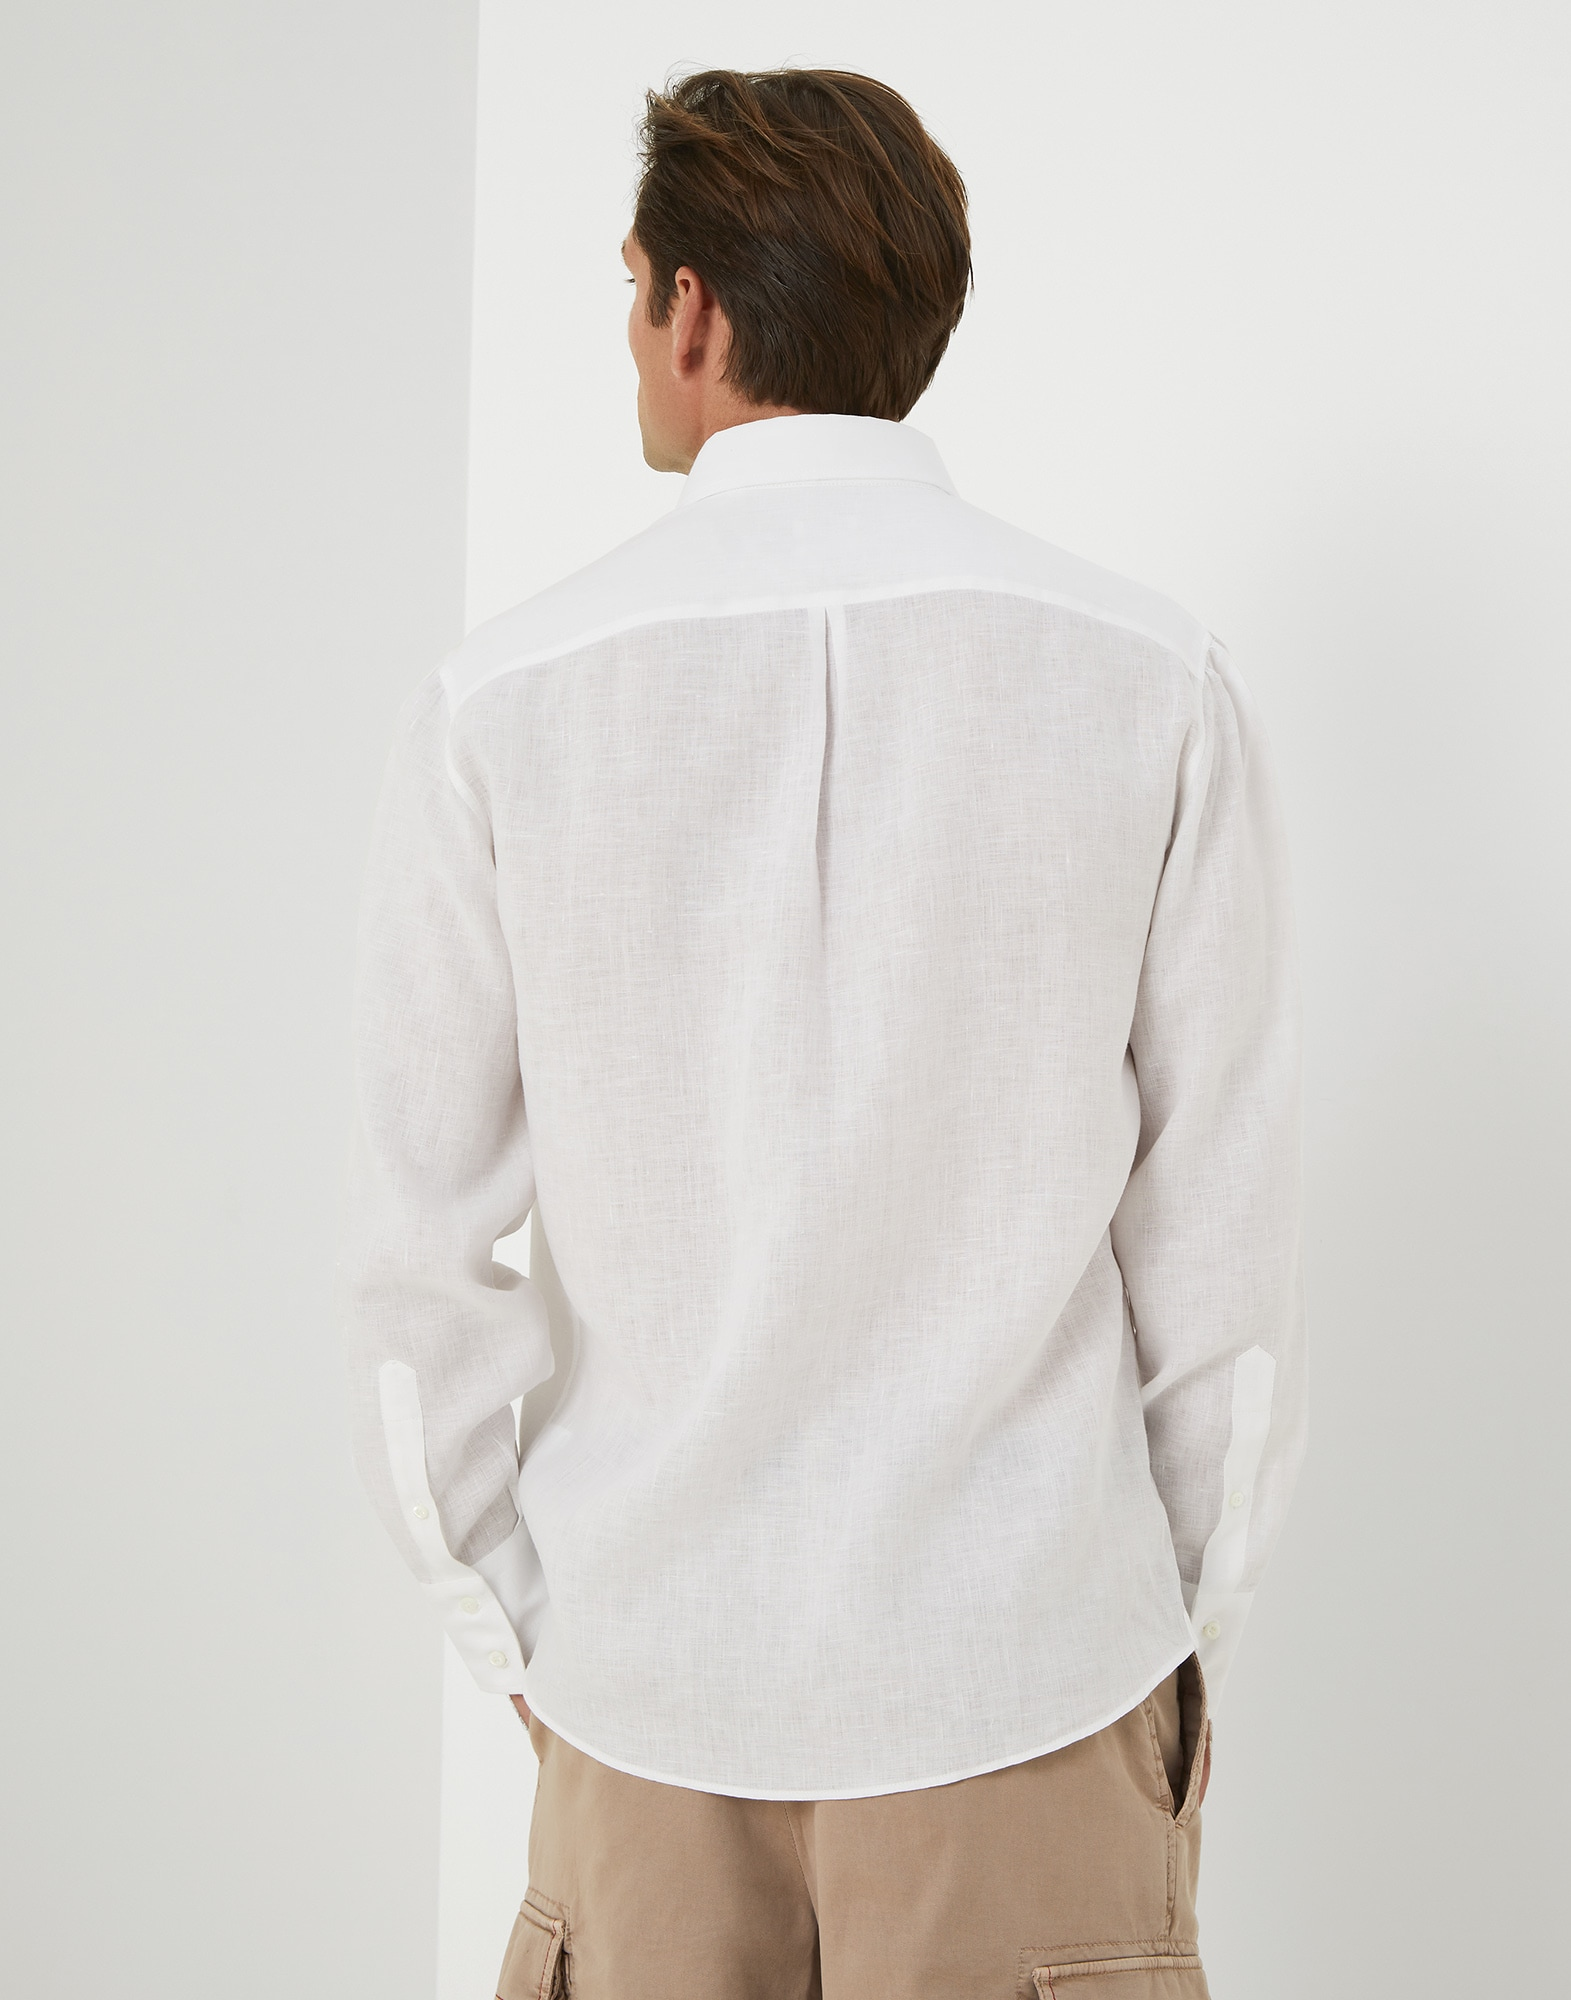 Basic - Back view